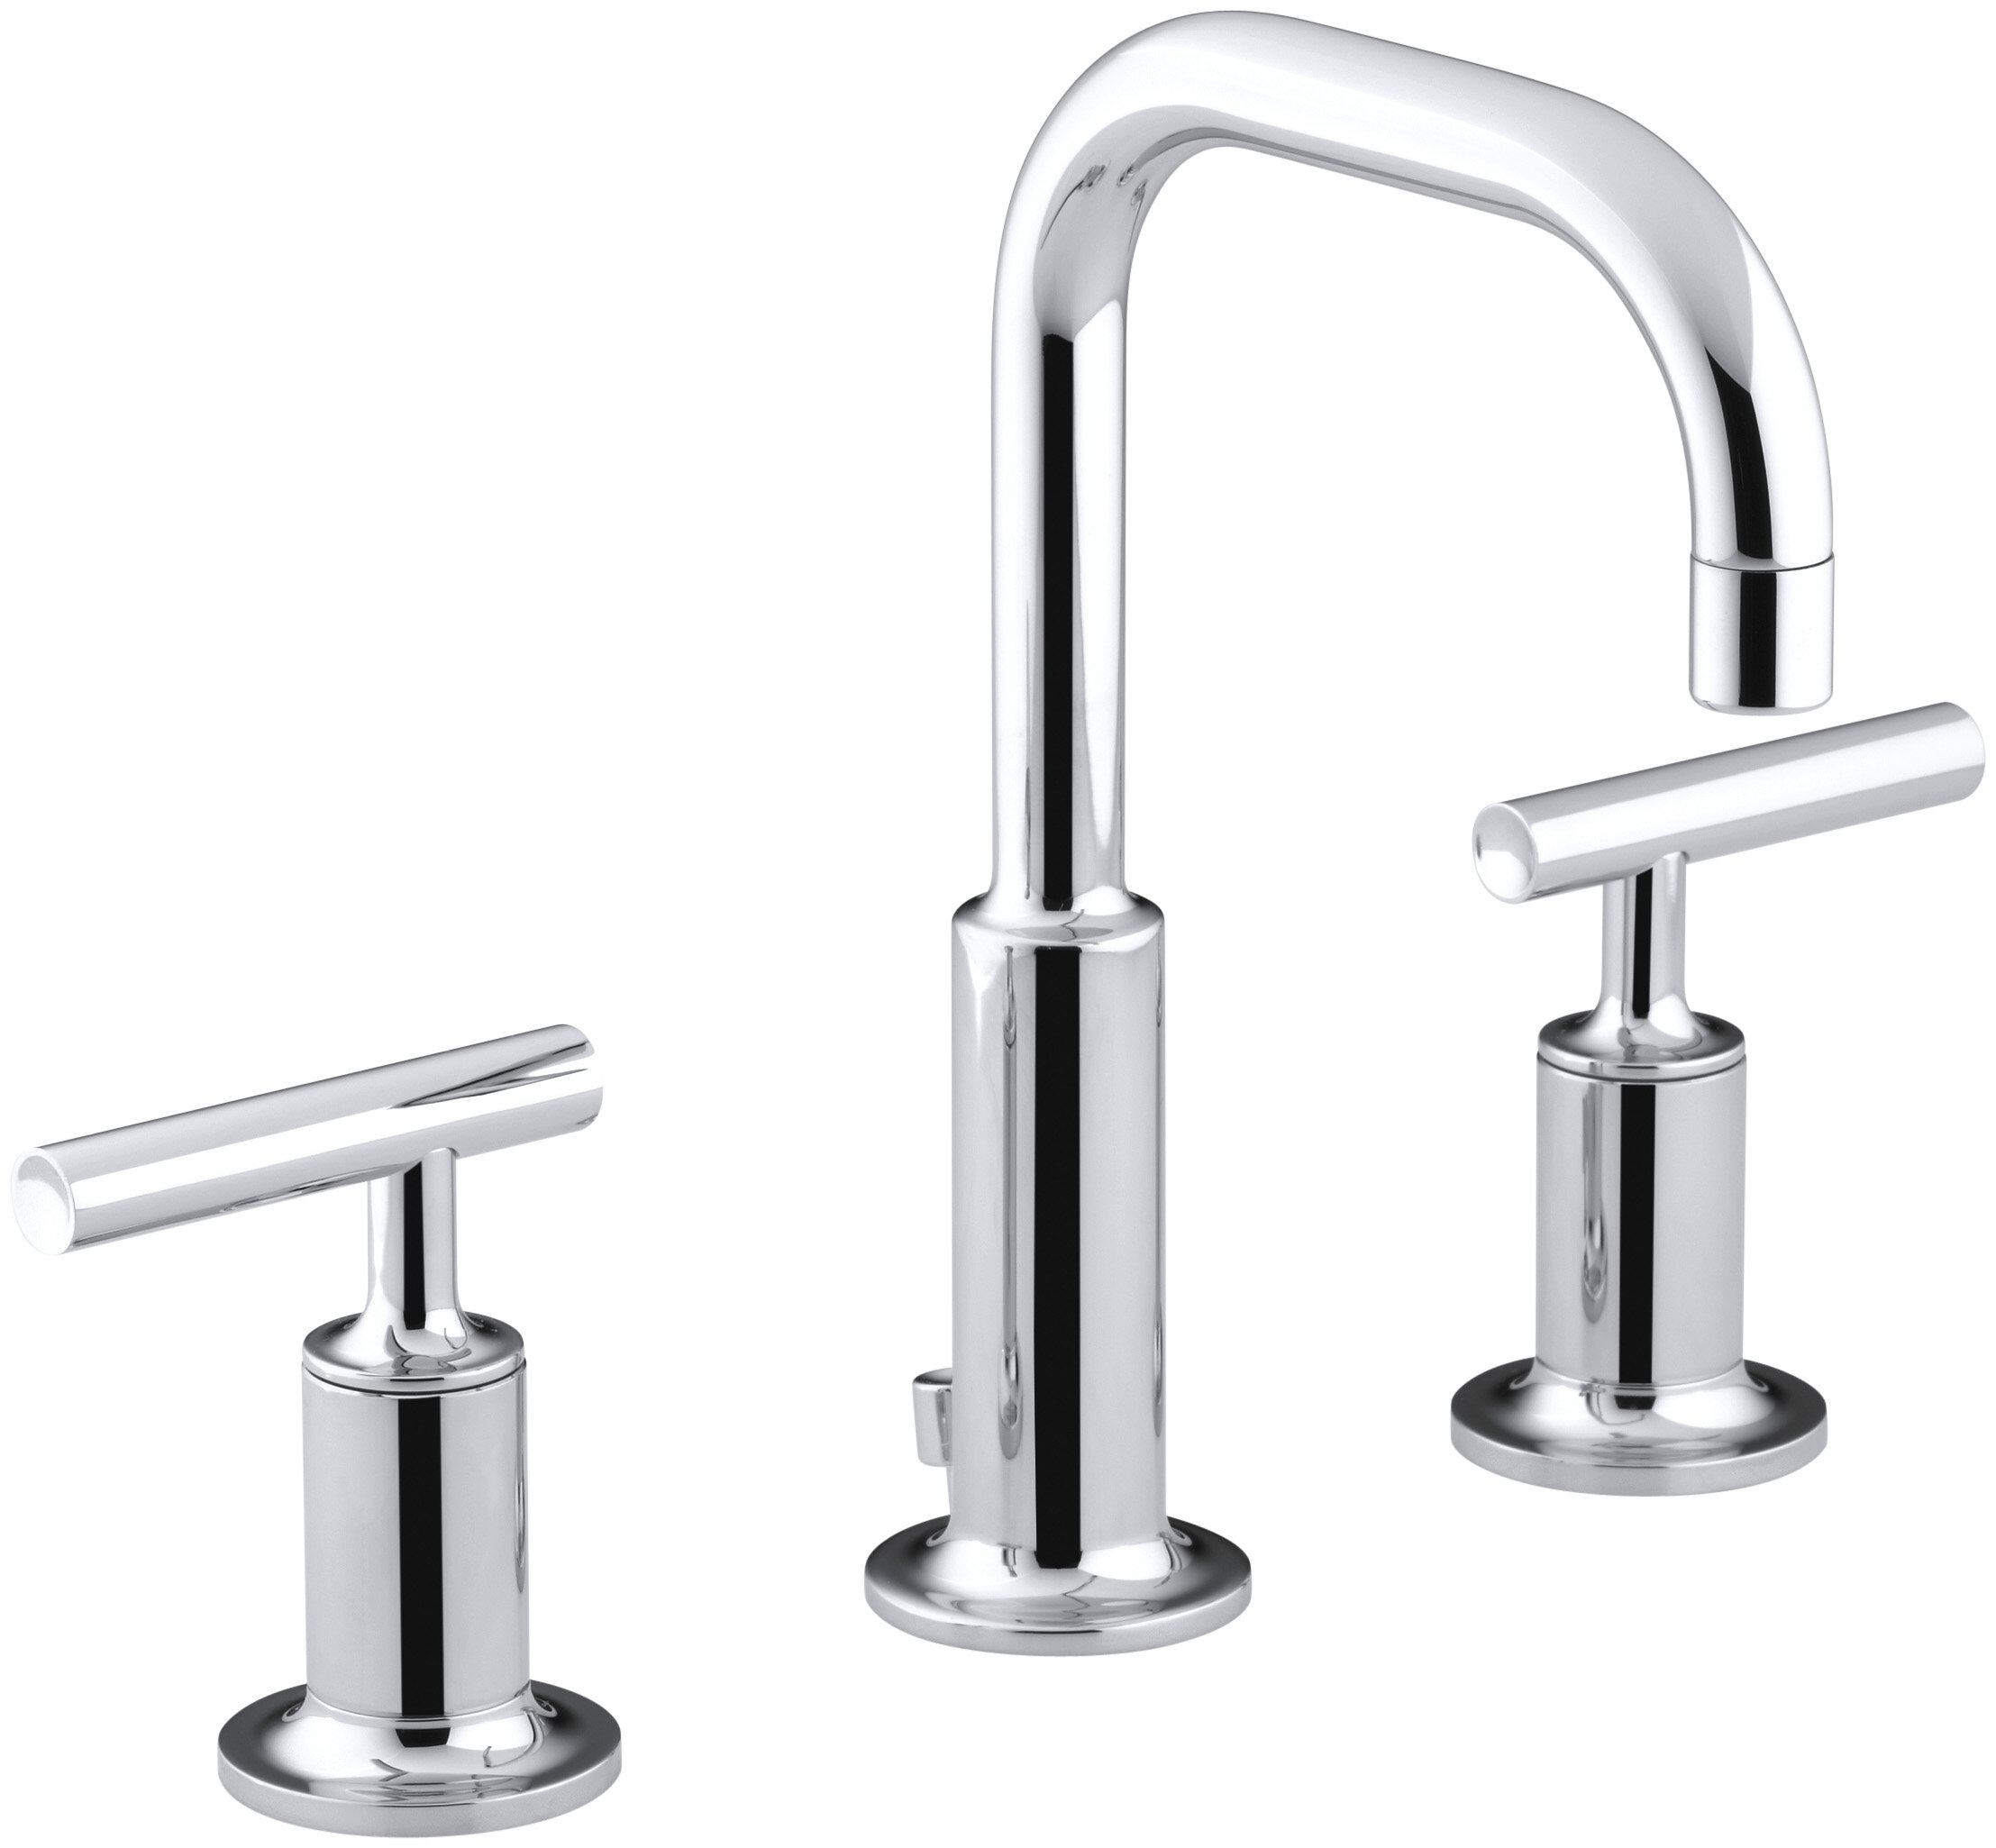 kitchen spread leaking handle pewter moen wide faucets of faucet kohler forte side two elegant attachment